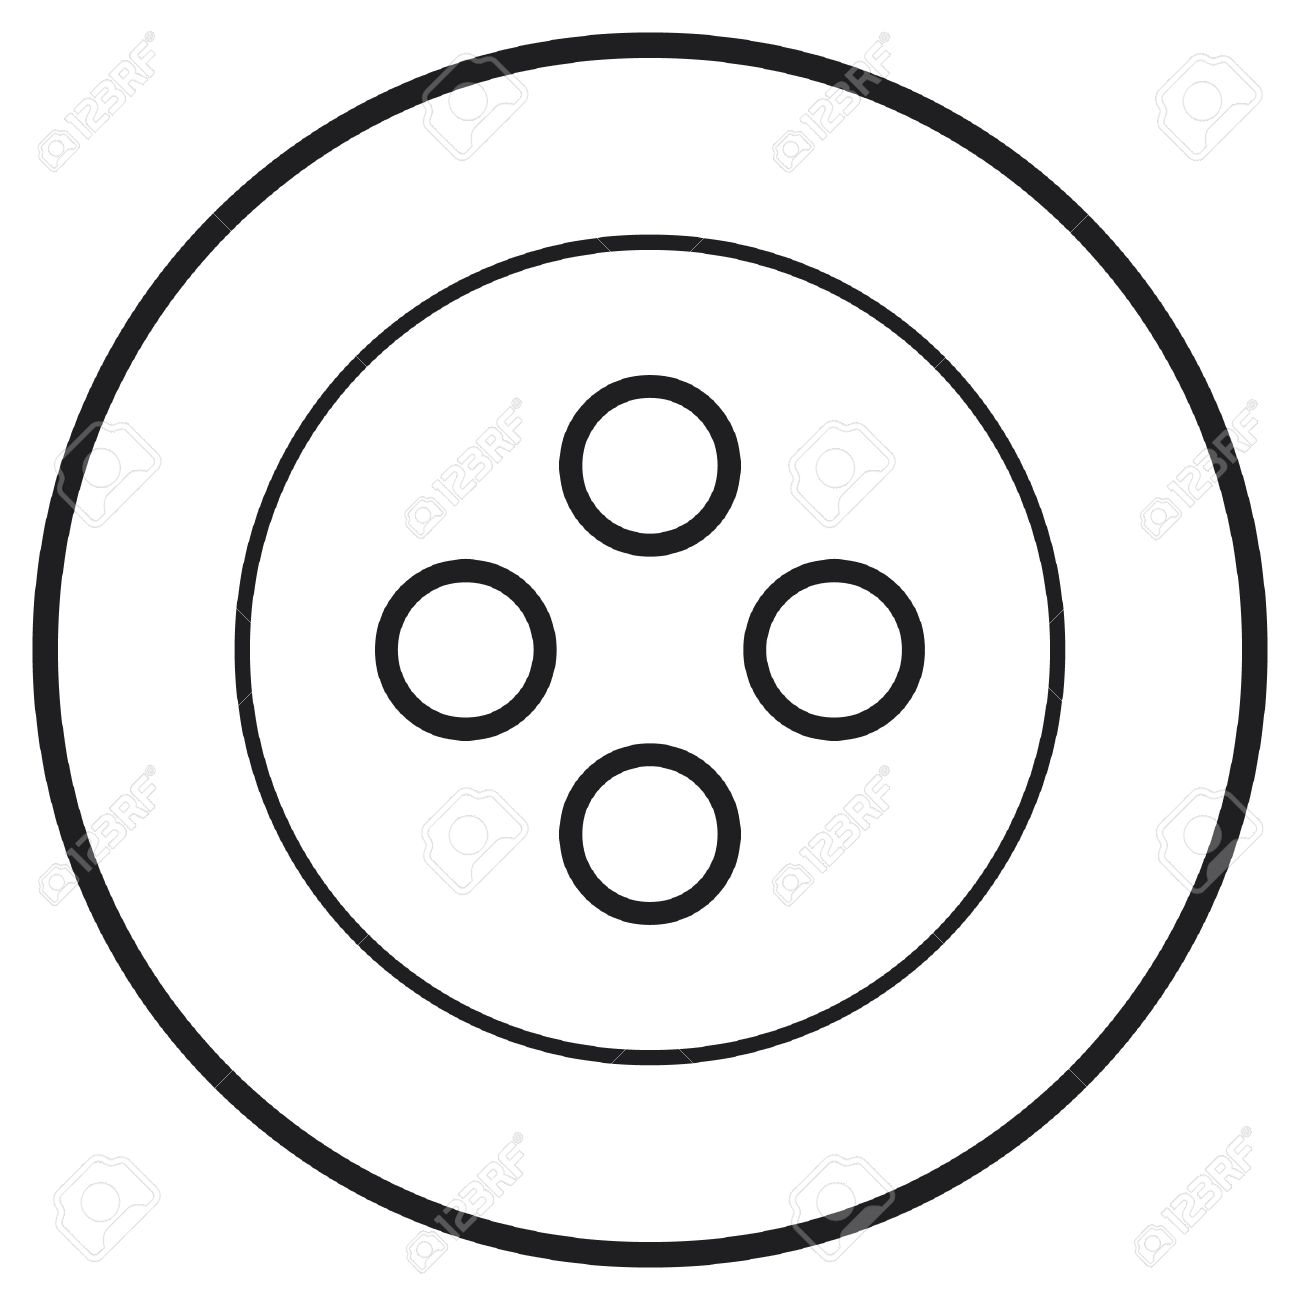 Button Clipart Black And White 1 Clipart Station